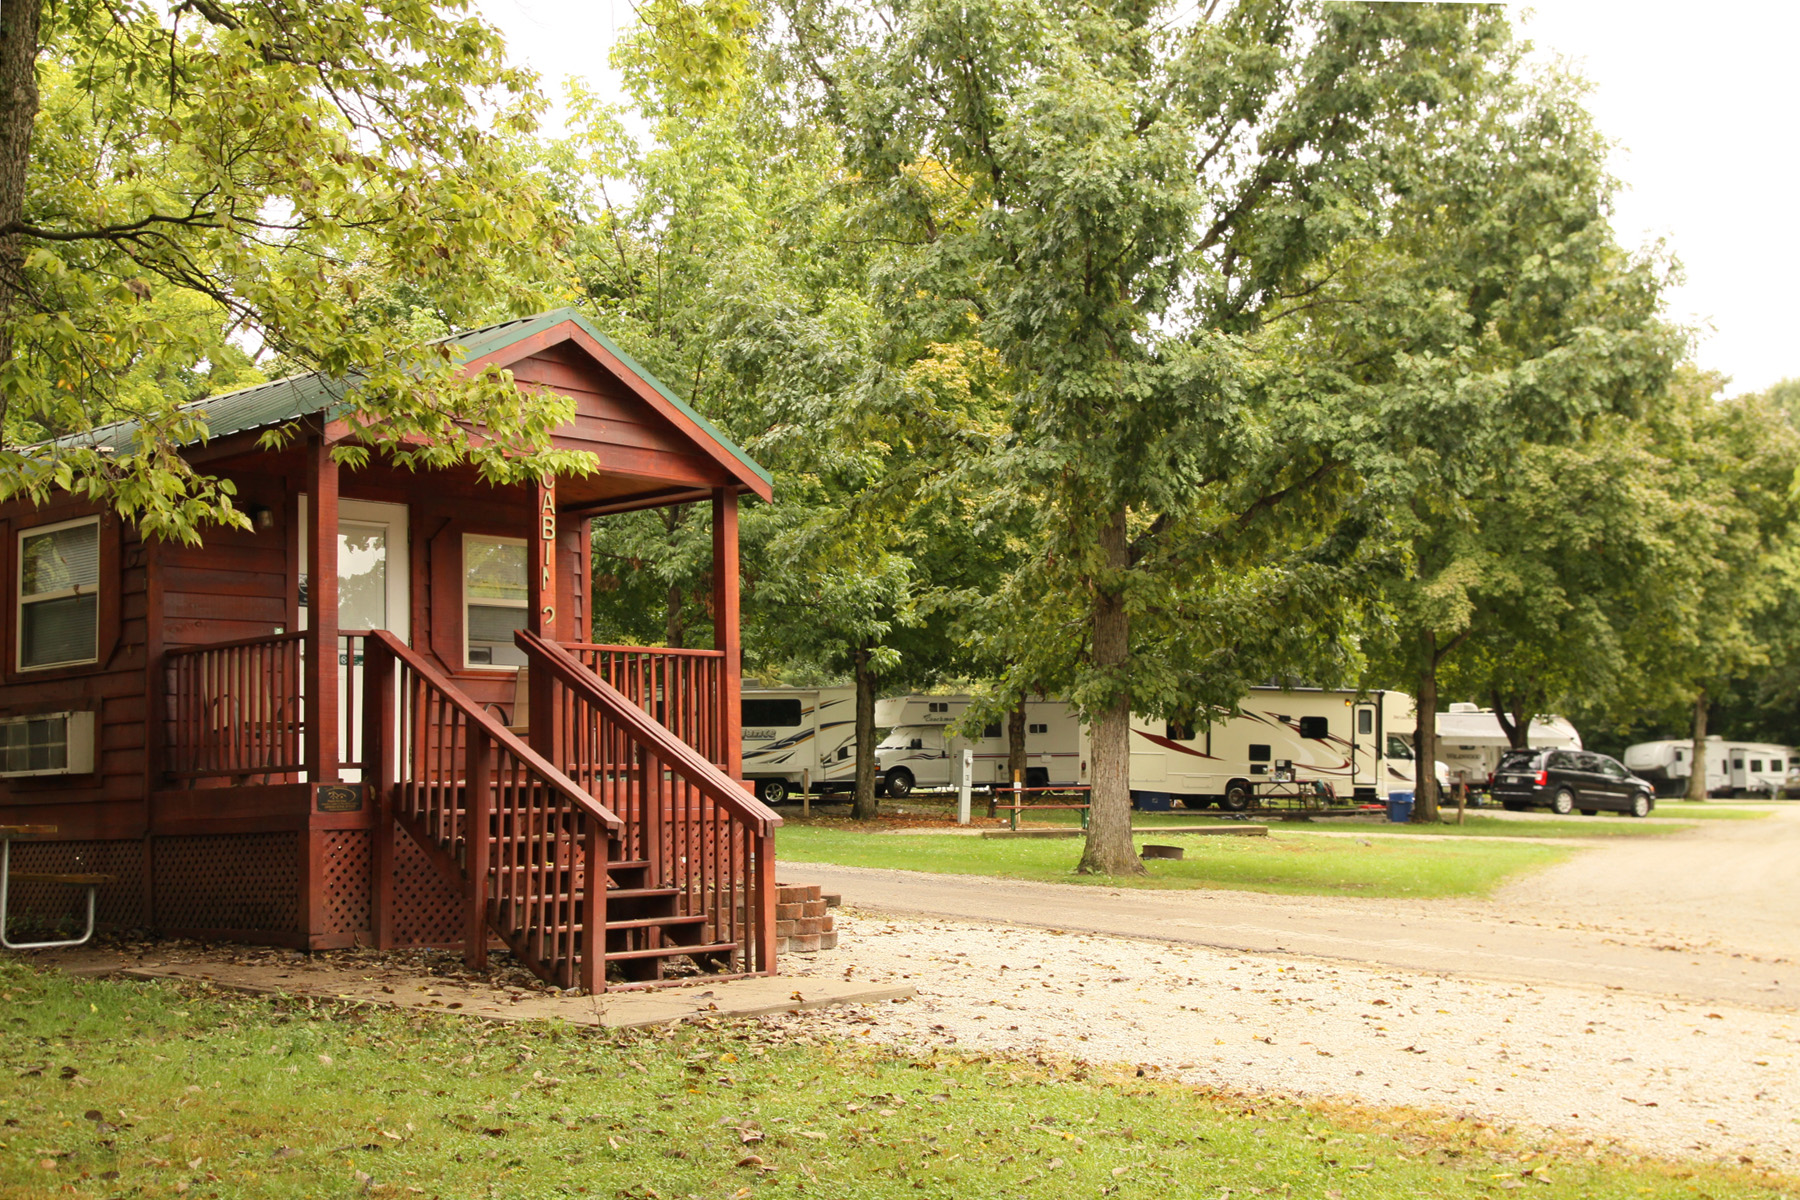 Cottages amp campground rentals riverview cottages campground jackman - Cottages Amp Campground Rentals Riverview Cottages Campground Jackman 2